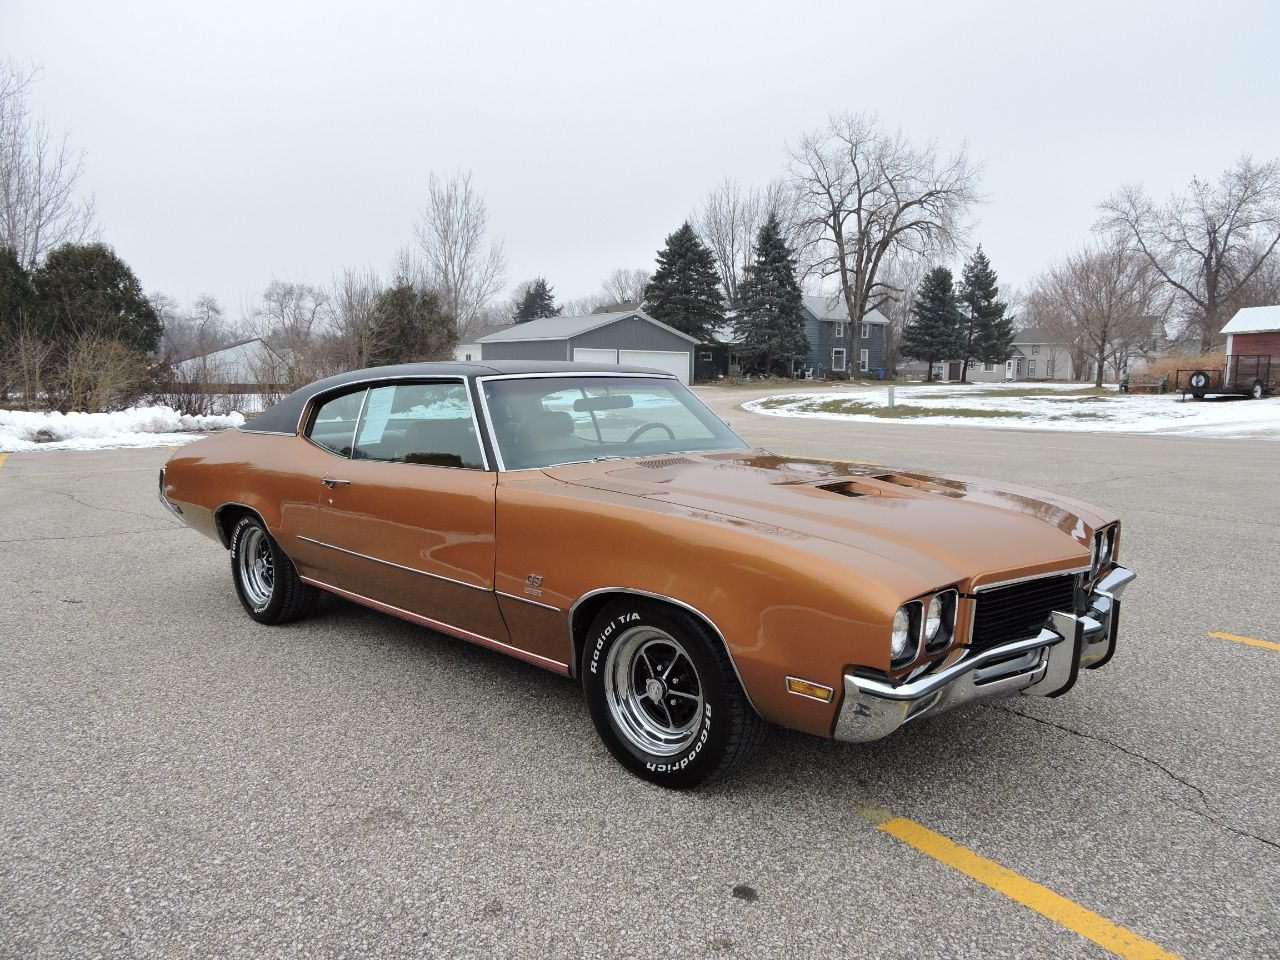 1972 Buick Gran Sport Classic cars, Cars for sale, Buick gs